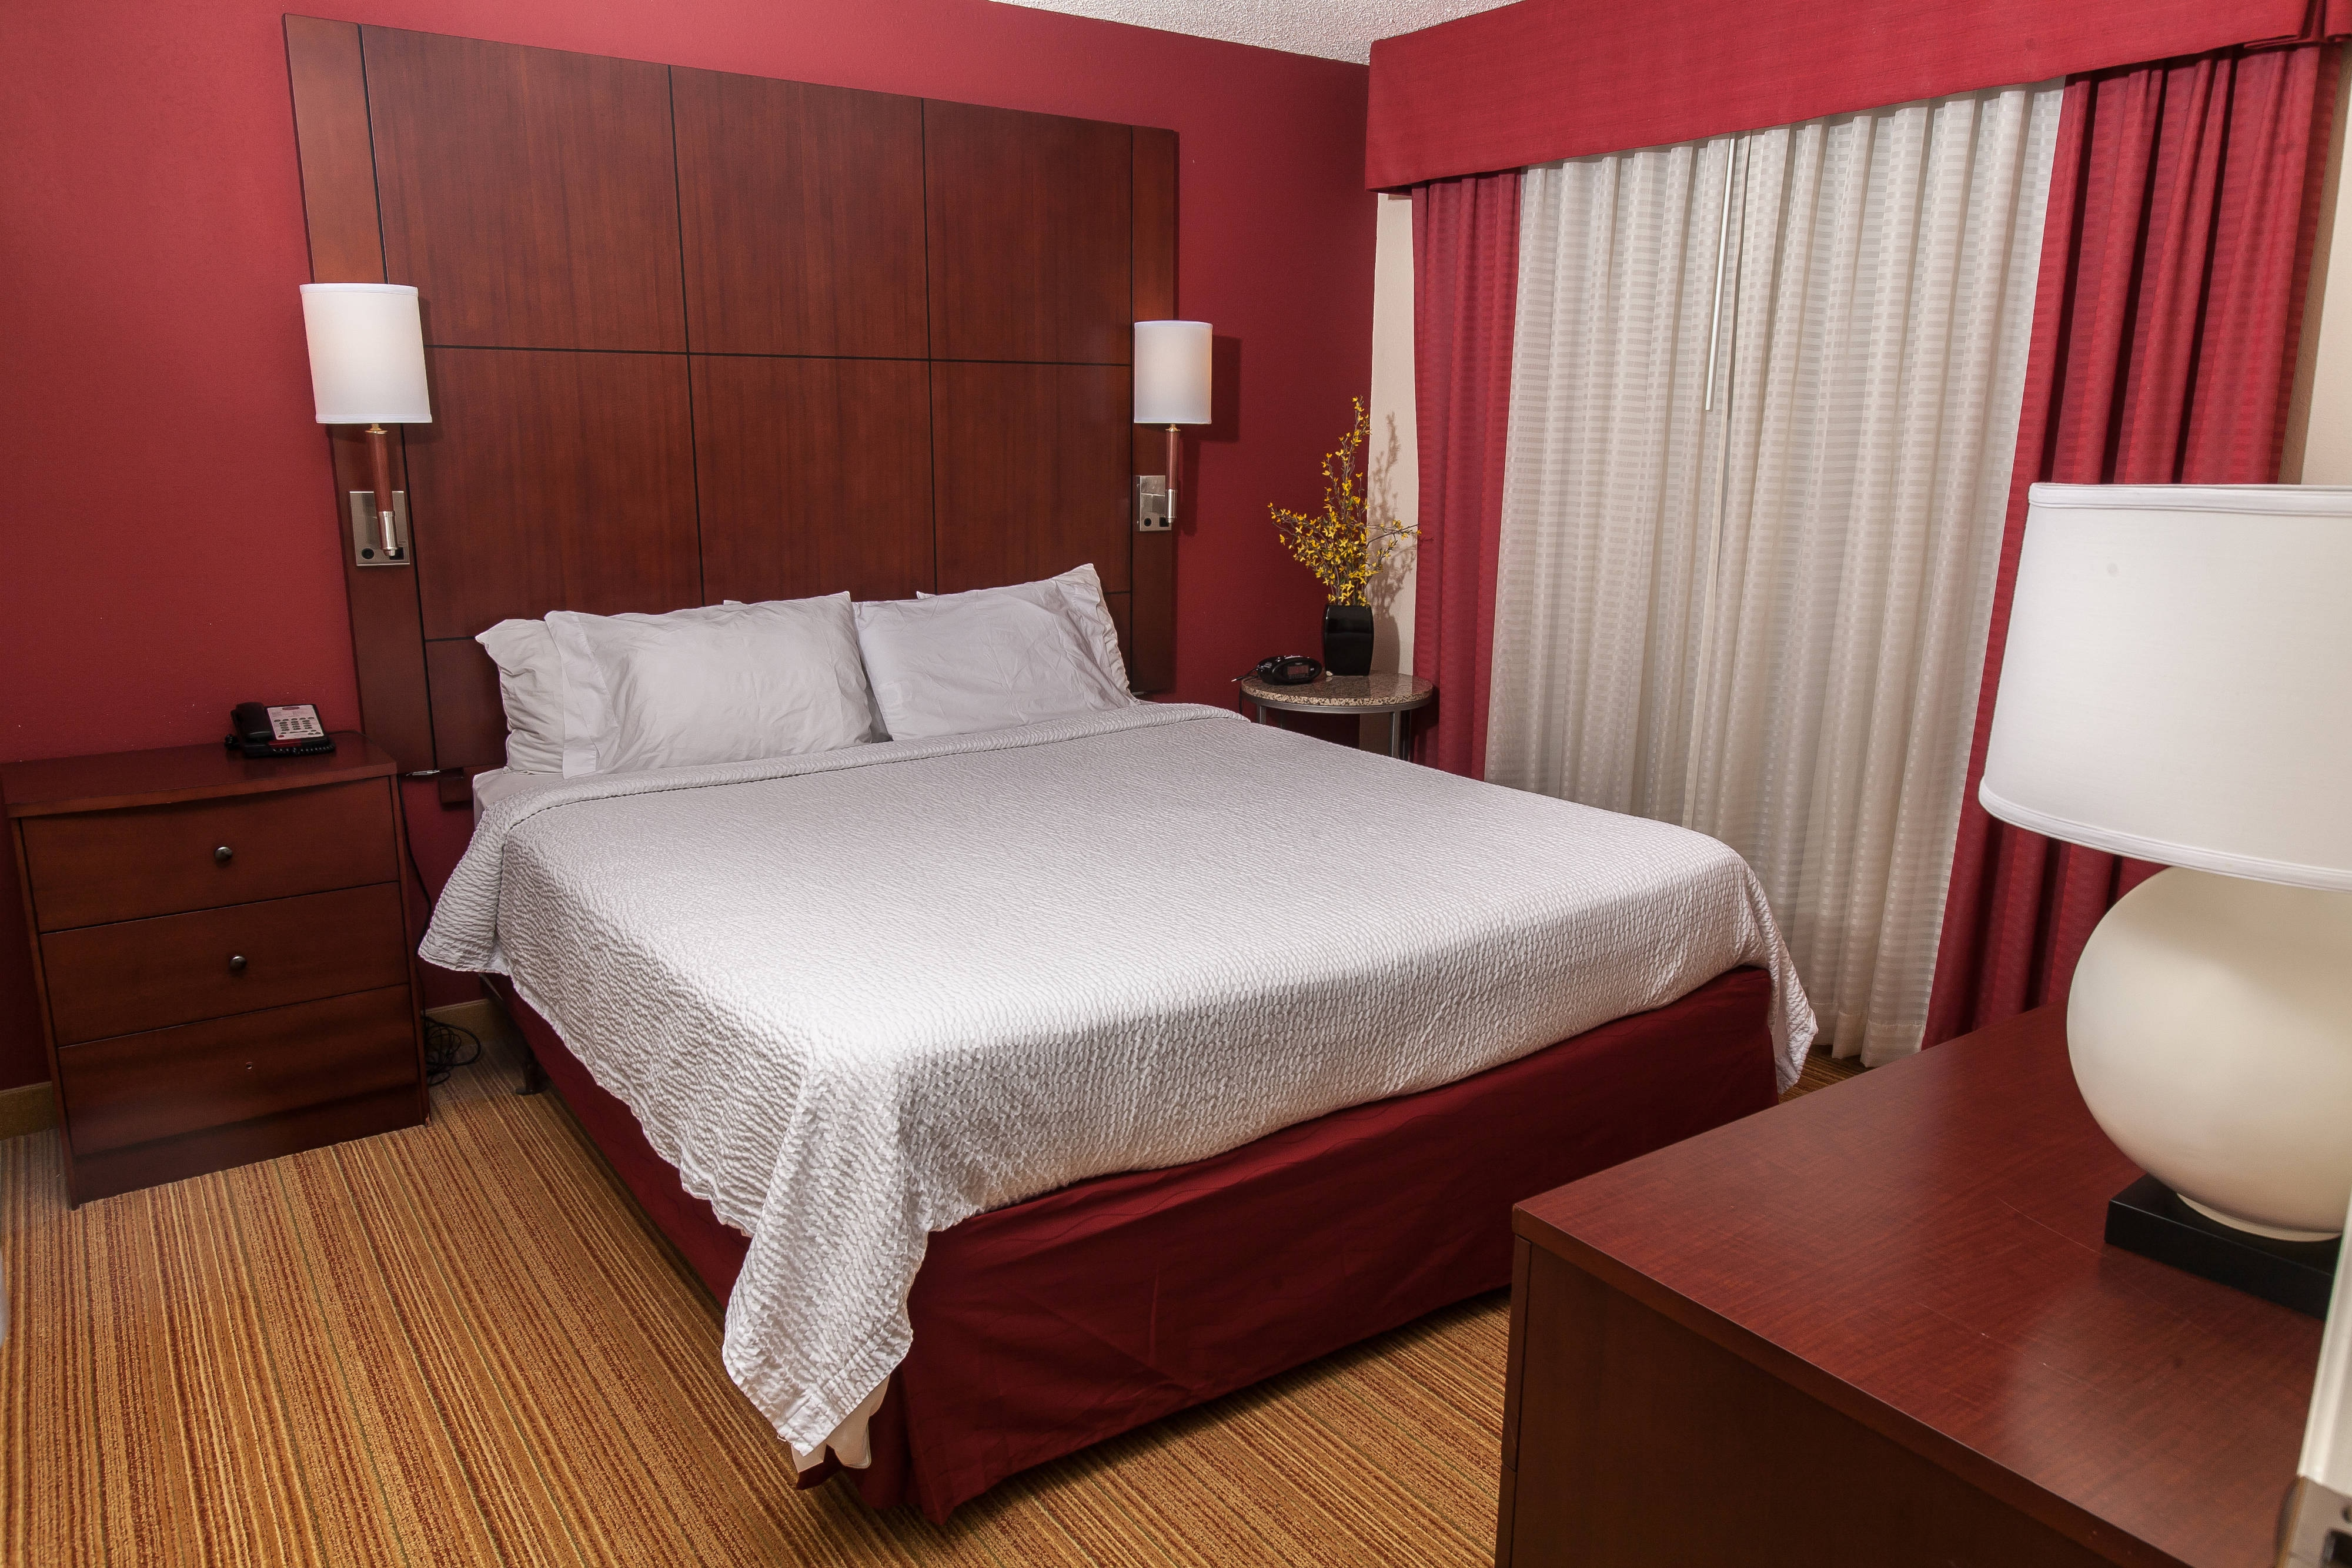 The One-Bedroom King Suite was designed with guests comfort in mind with a private bedroom with a king-size bed and private bathroom.  This suite offers two bedside tables with drawers, a dresser with